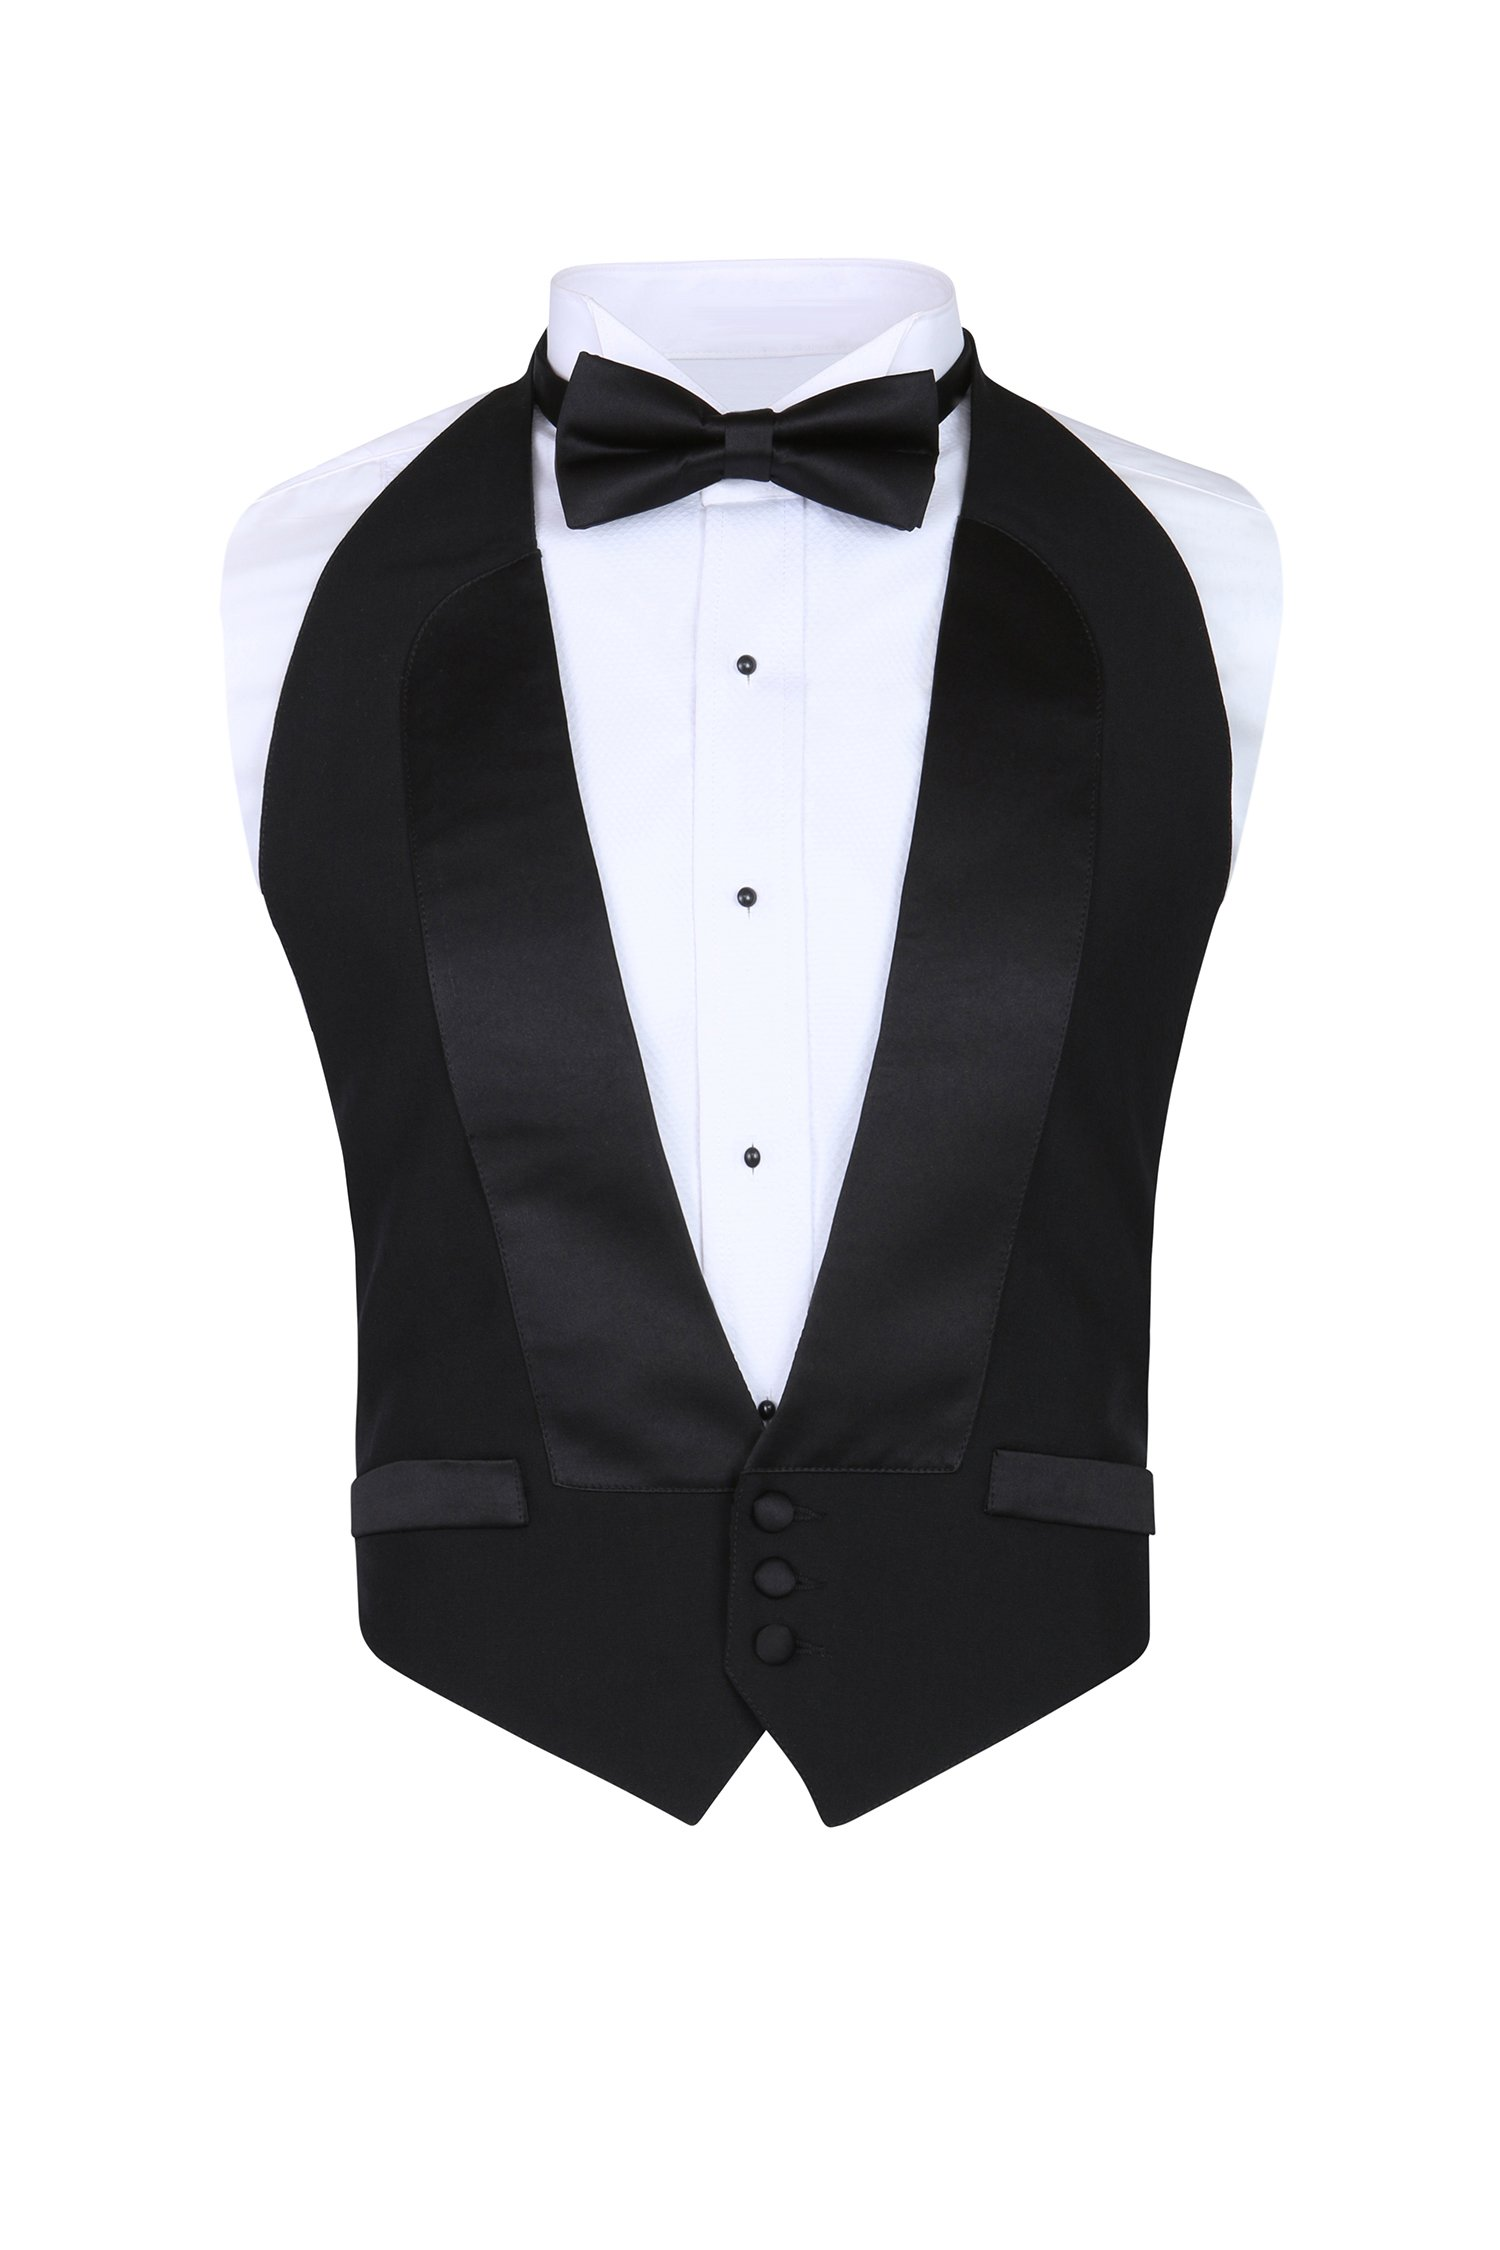 Men's Classic Formal 100% Wool Black Backless Tuxedo Vest Includes Bow Tie (Small - XLarge (Adjustable))